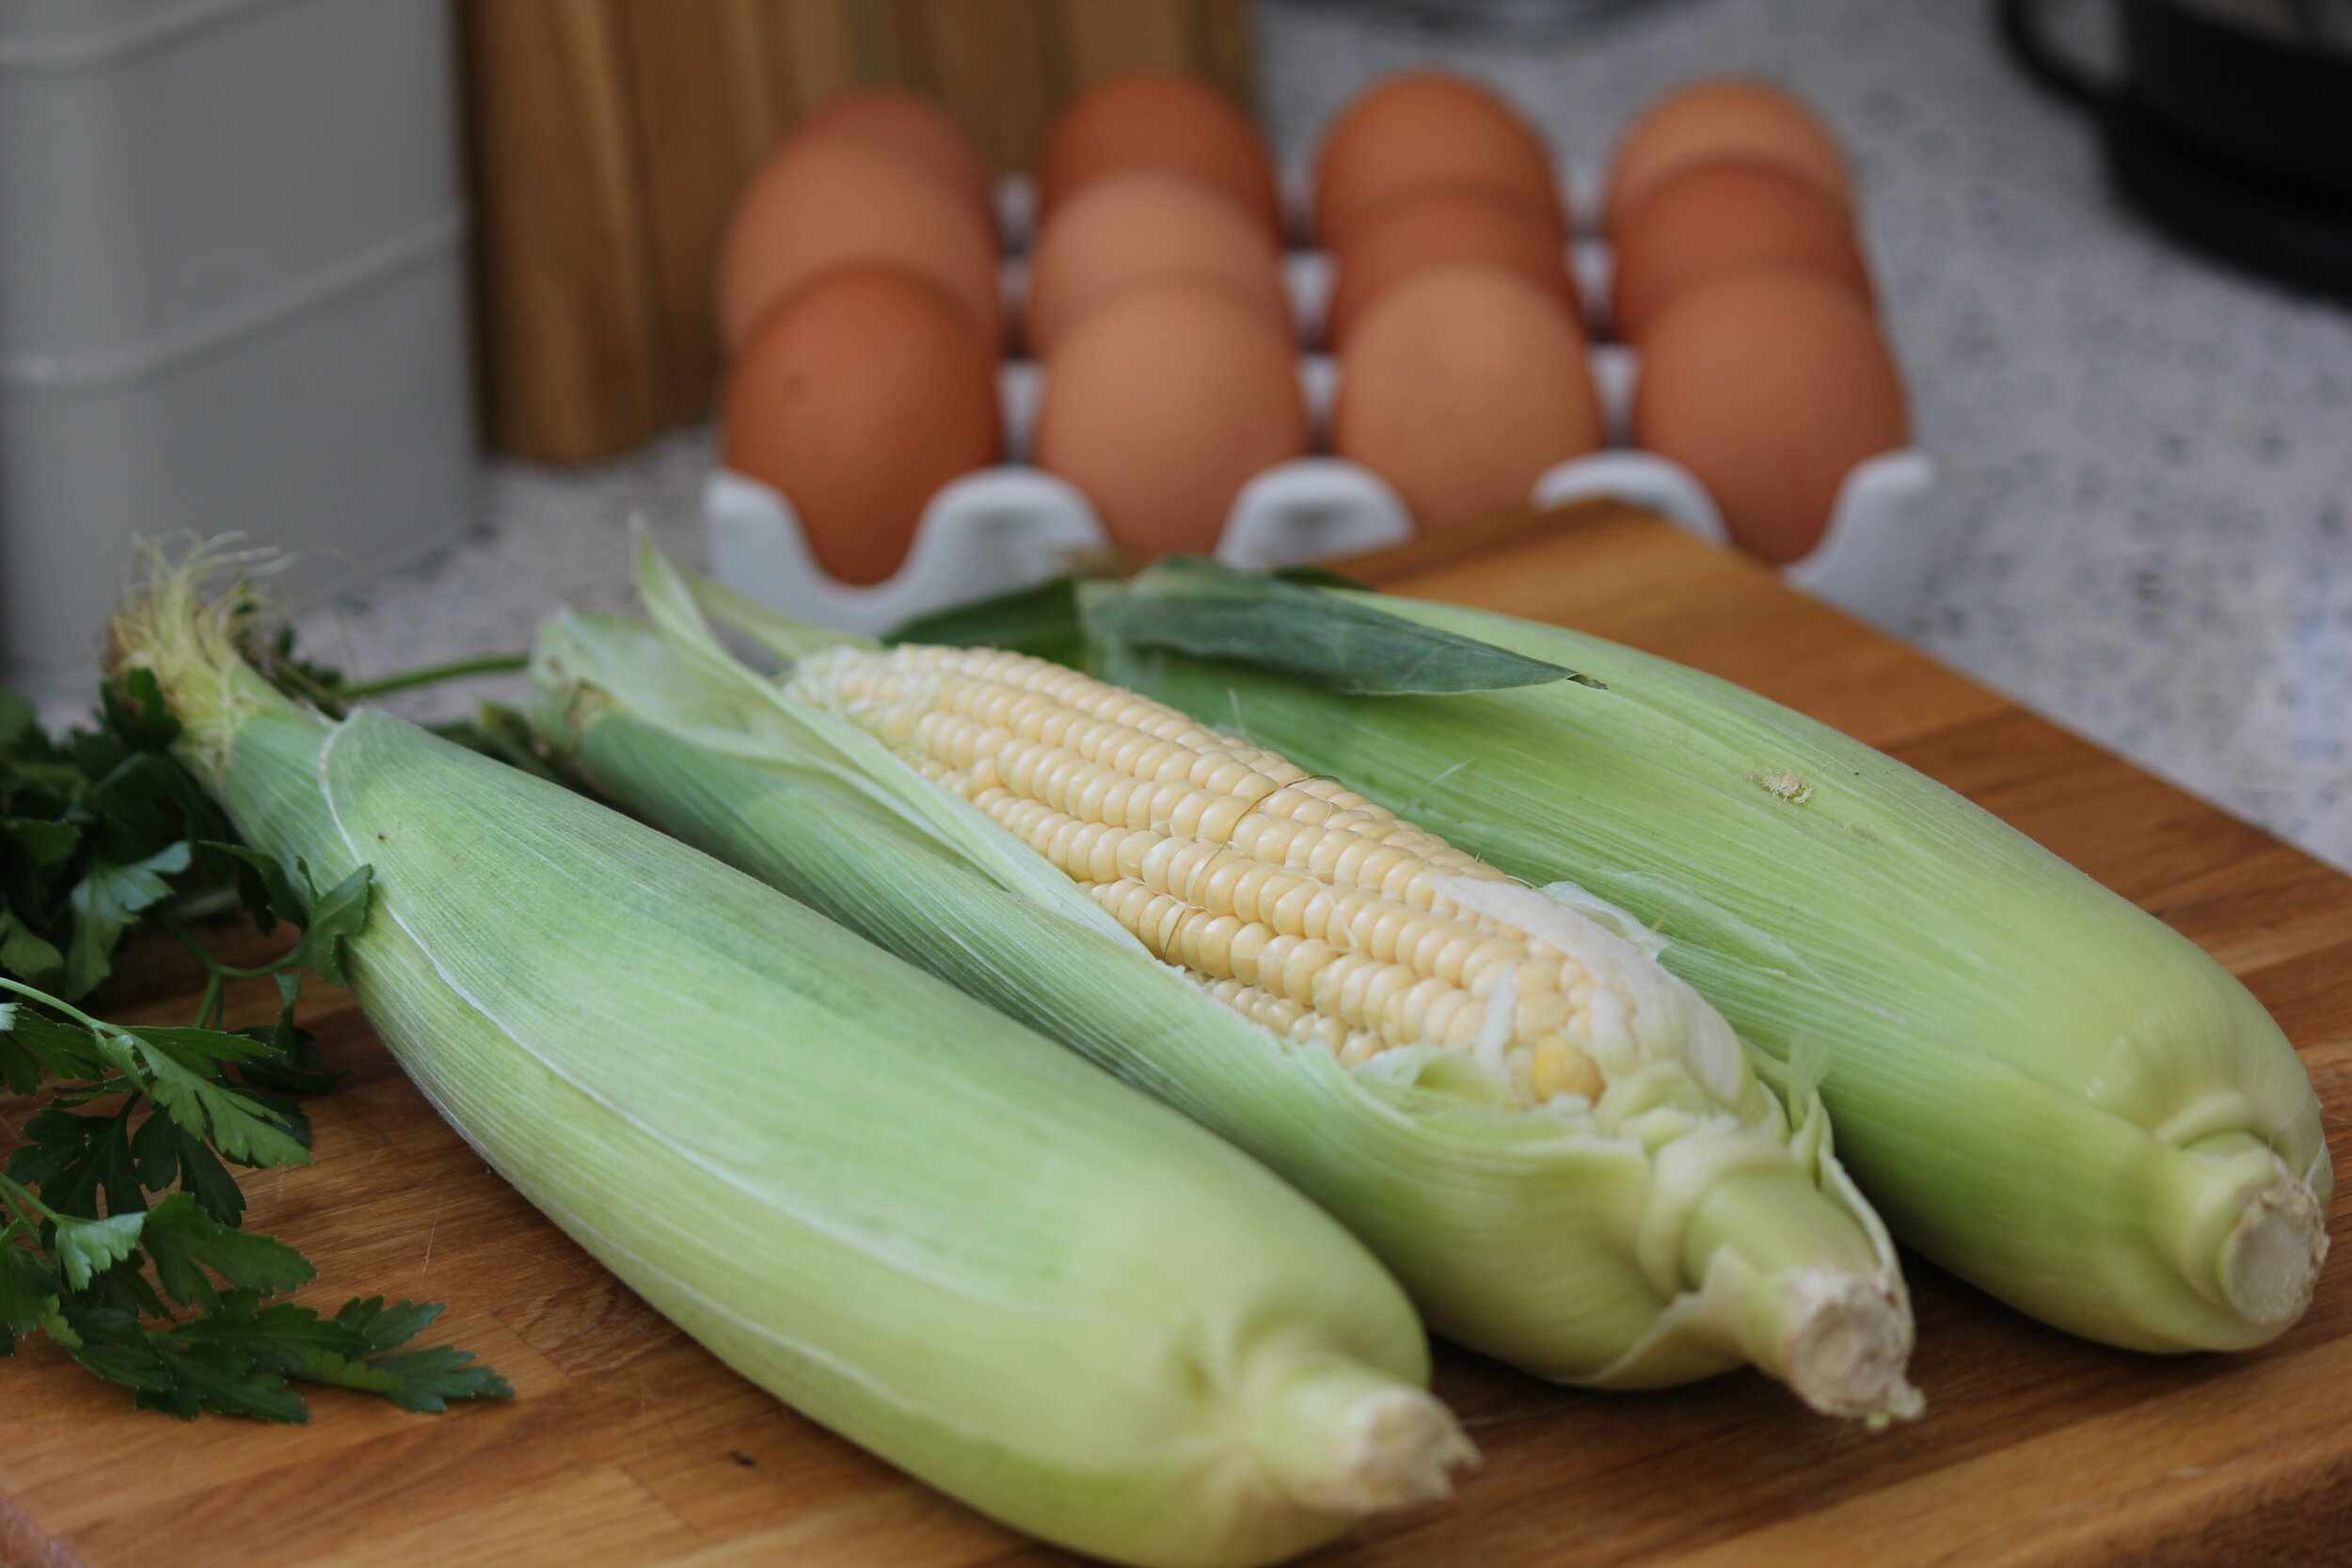 Sweetcorn in their husks